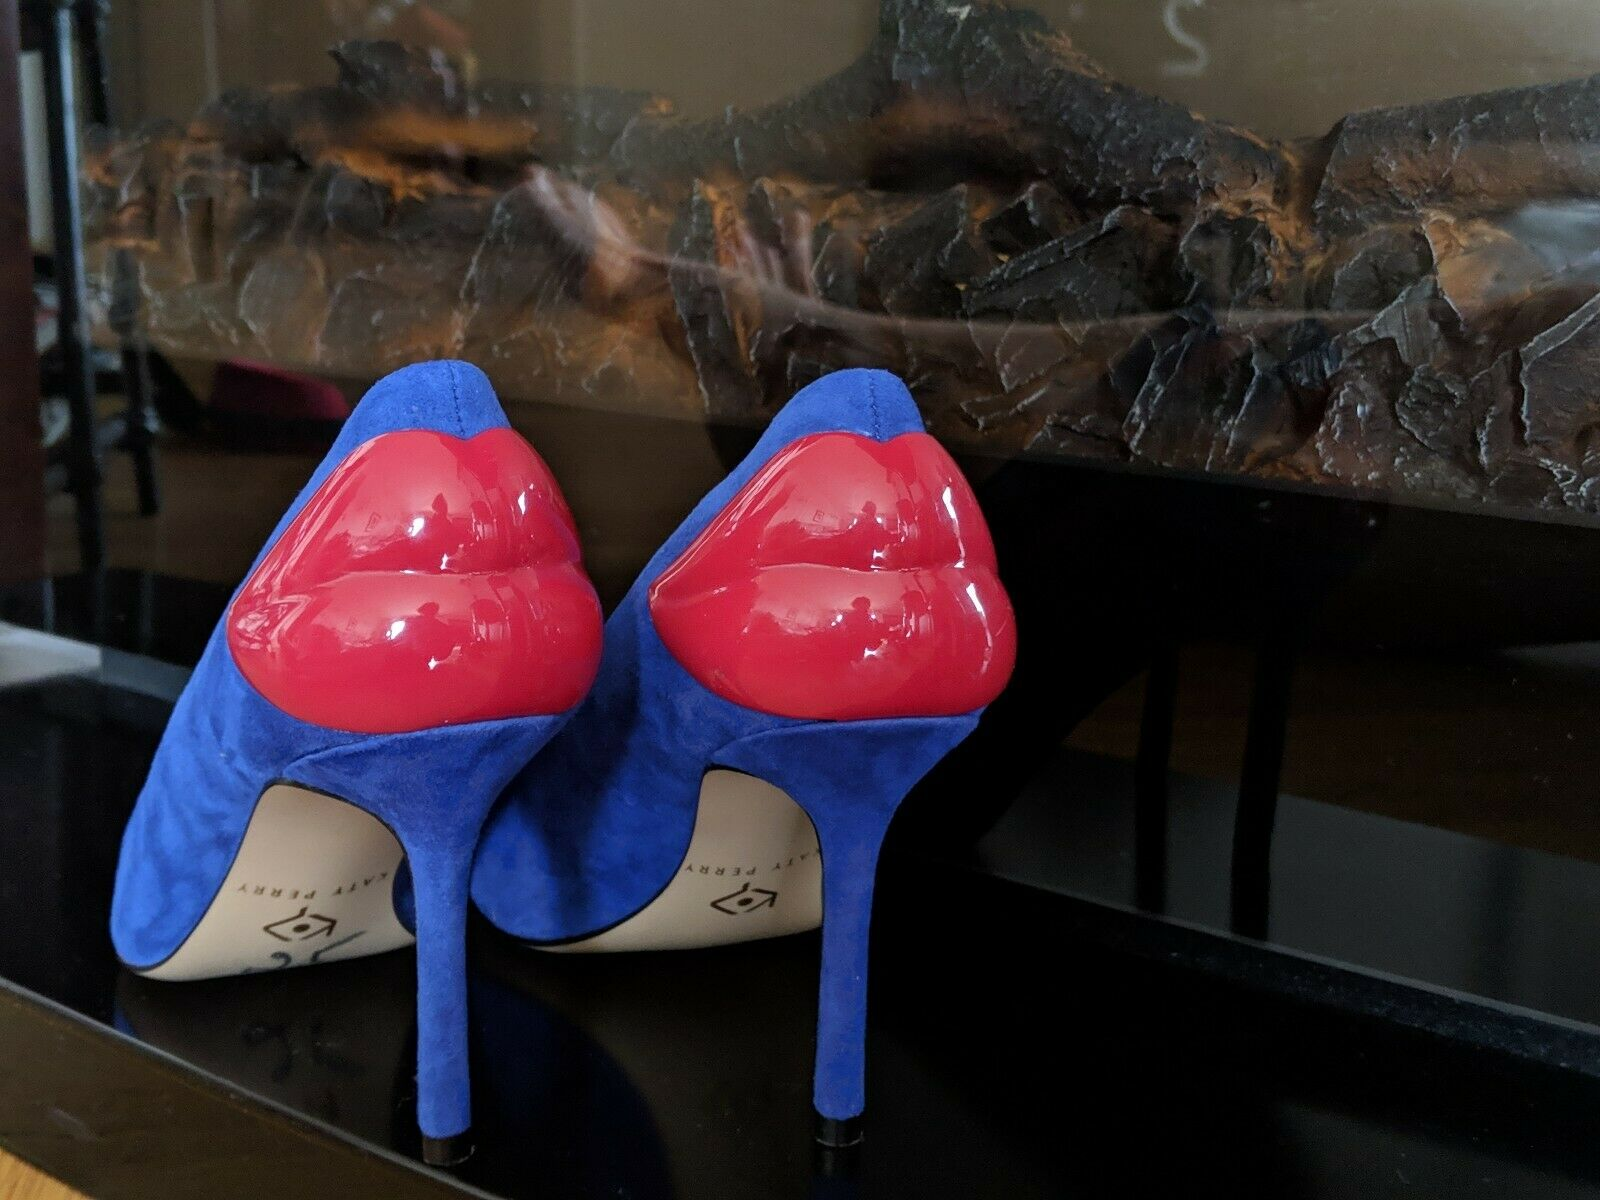 Katy Perry Women's Women's Women's The Femi Red Lips Pump, Space bluee Suede shoes size 5 new 6b4ff2